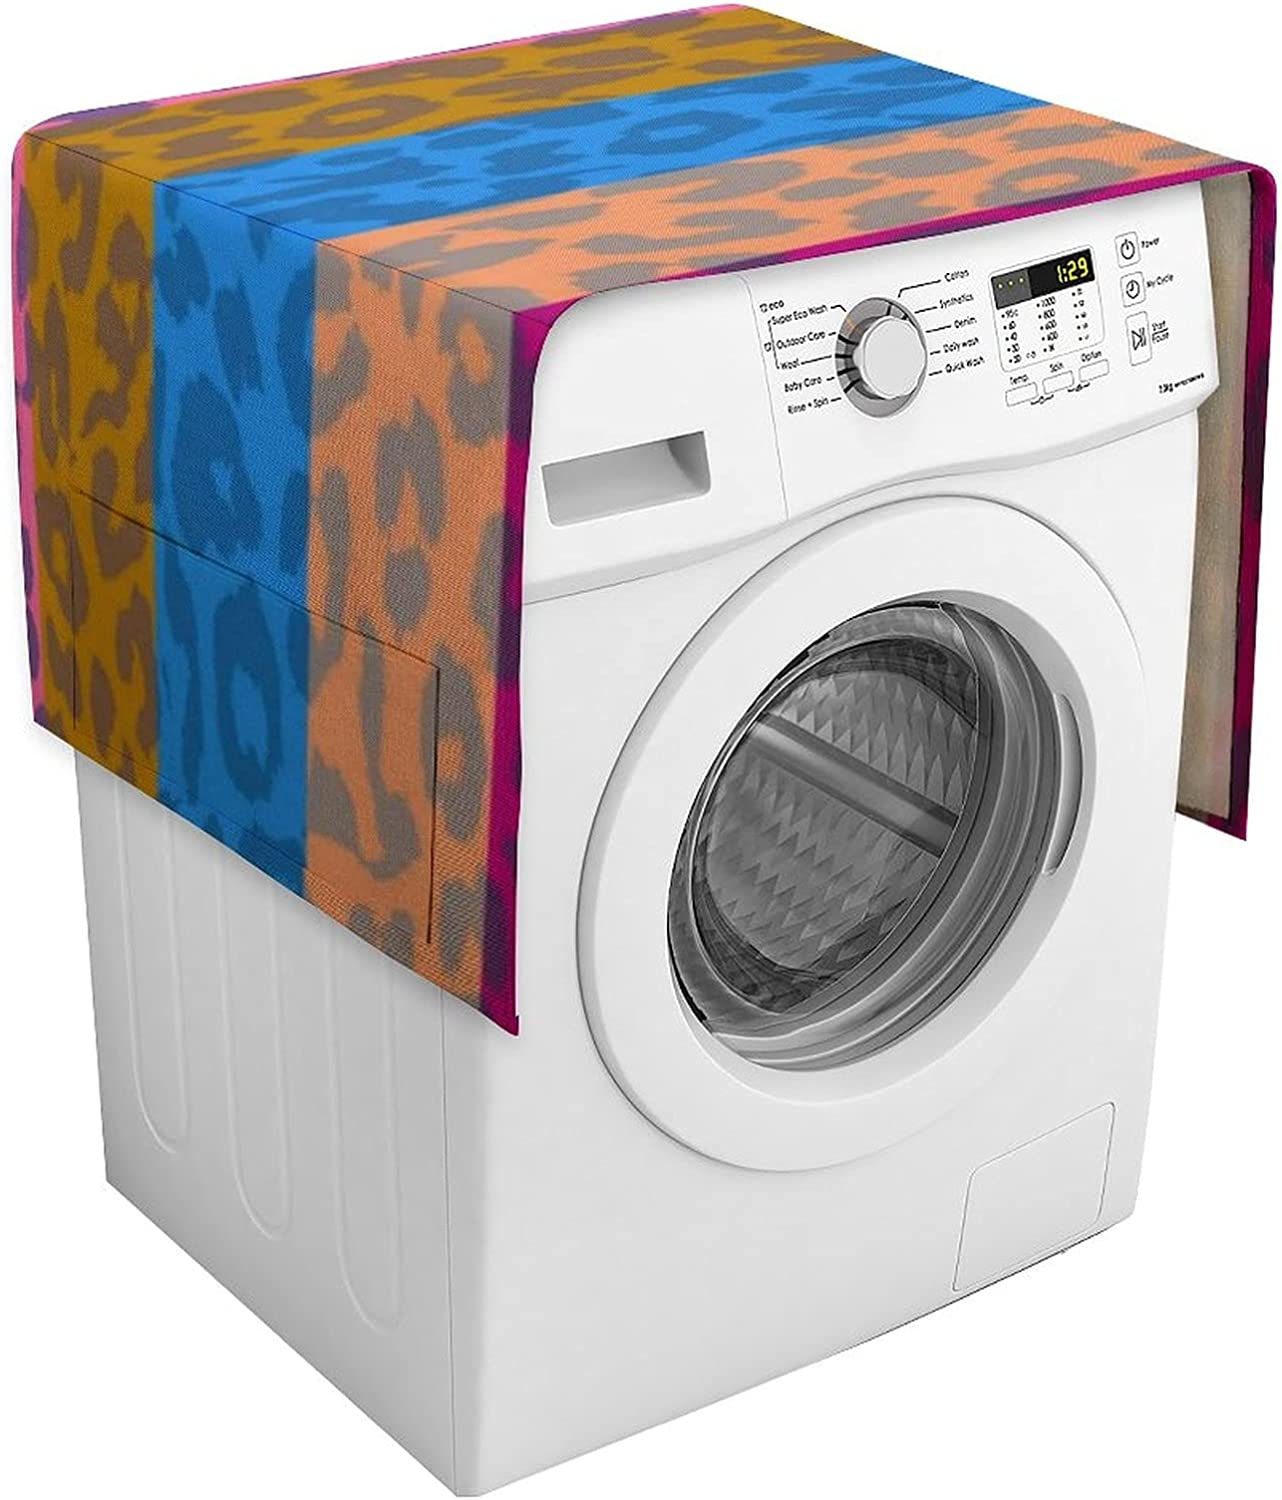 All items free shipping Multi-Purpose Washing Max 51% OFF Machine Covers Protector Appliance Washer